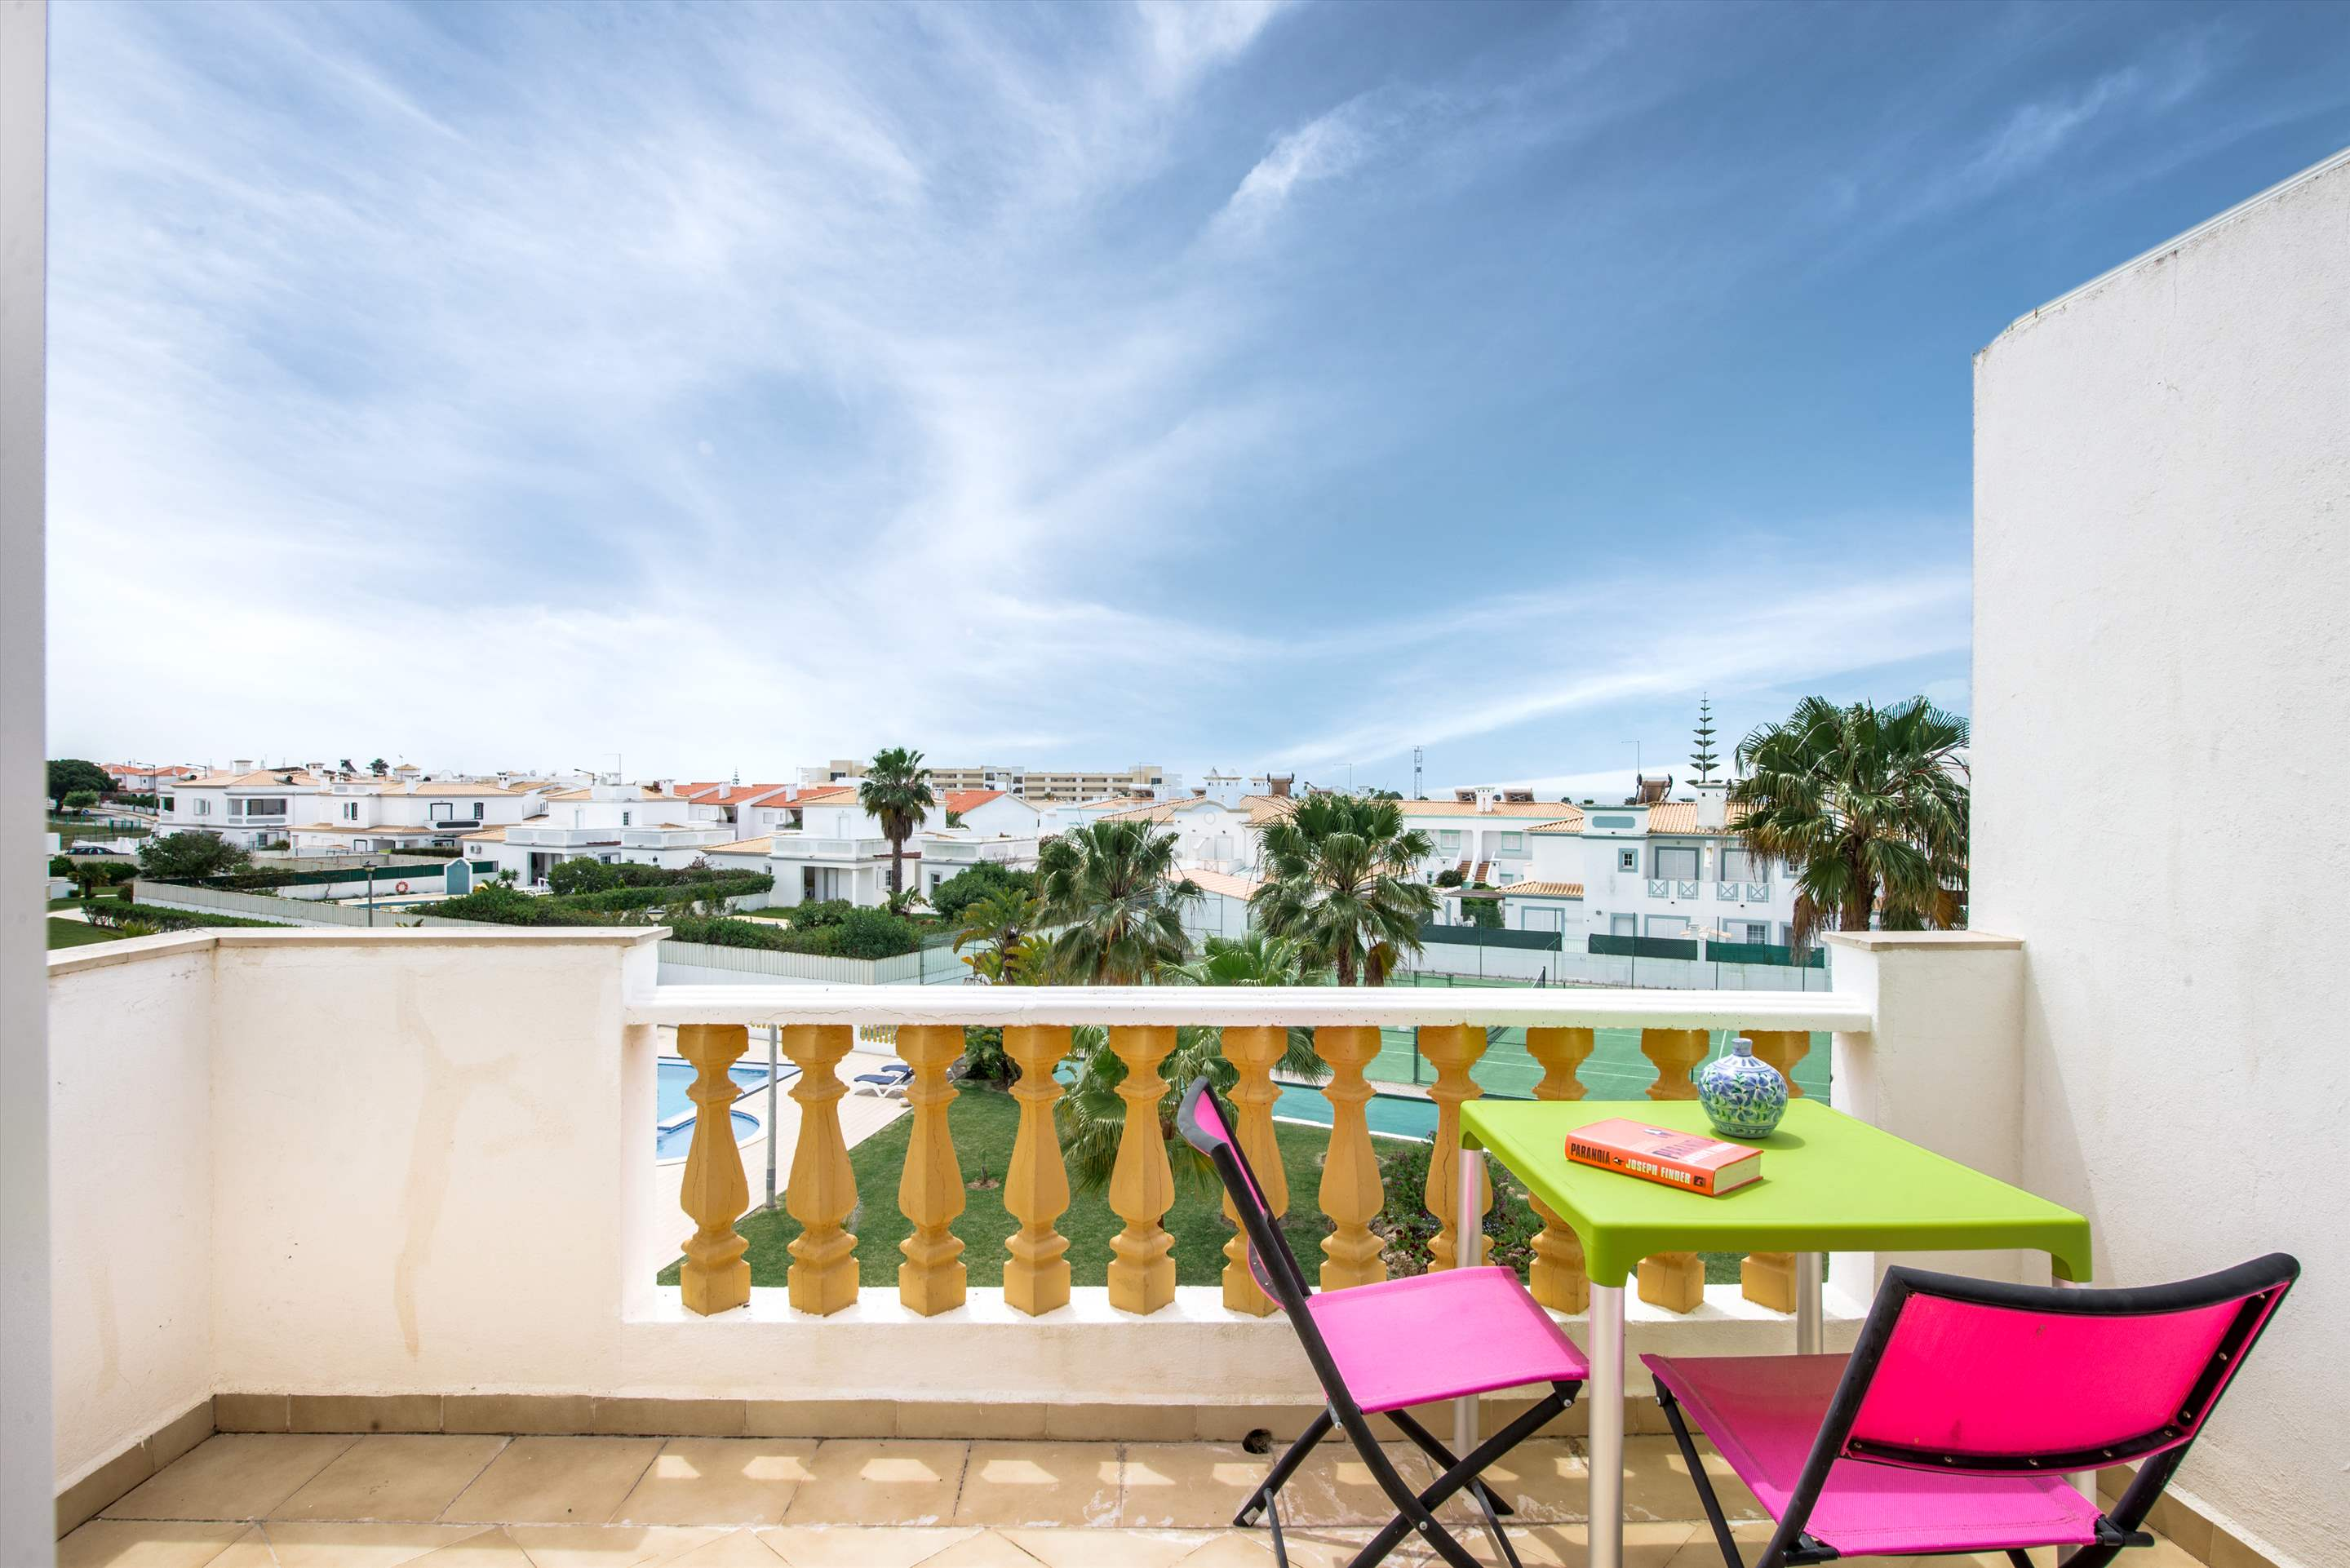 Apt O Monte, Up to 6 Persons, 3 bedroom apartment in Gale, Vale da Parra and Guia, Algarve Photo #22